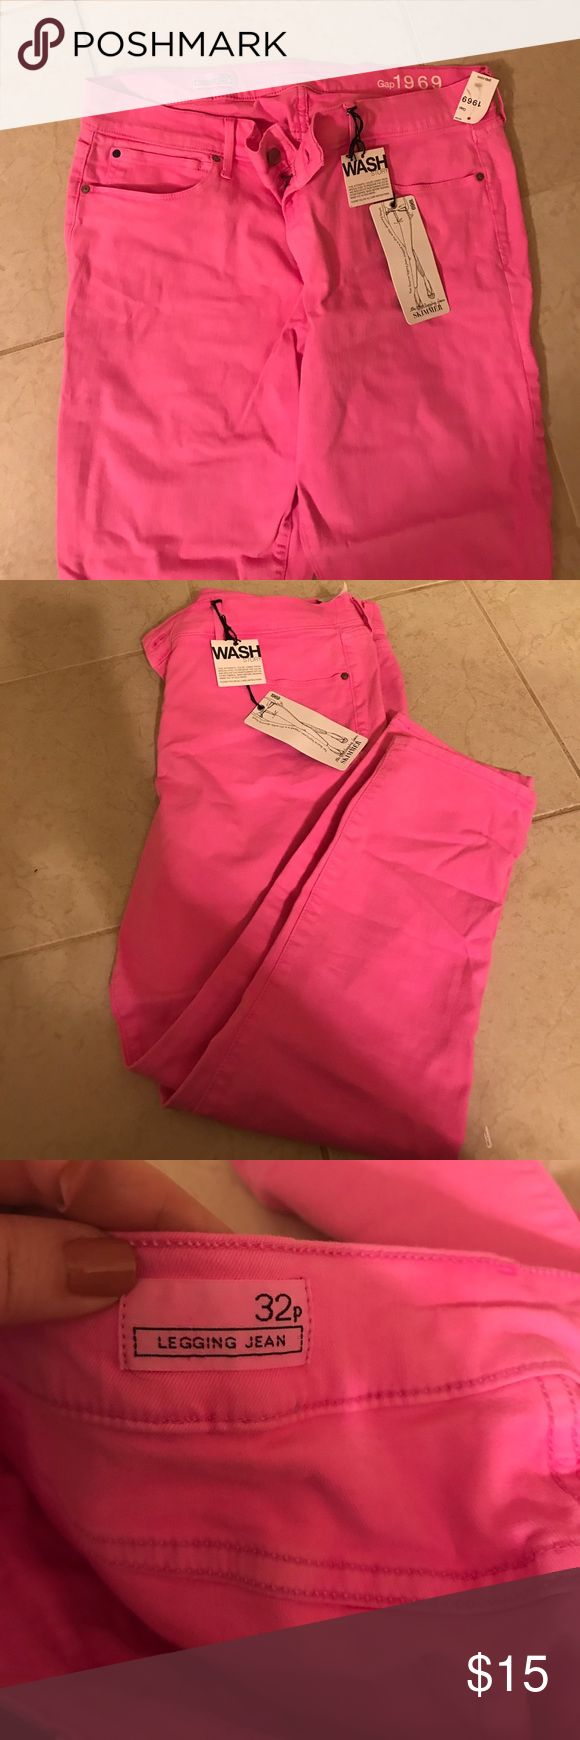 Gap Women's Pink Petite Legging Jean NWT 32P Gap bright pink petite capri legging jeans in size 32P. They are new with tags. Gap 1969. Perfect condition. Comes from a smoke free home. gap Pants Leggings